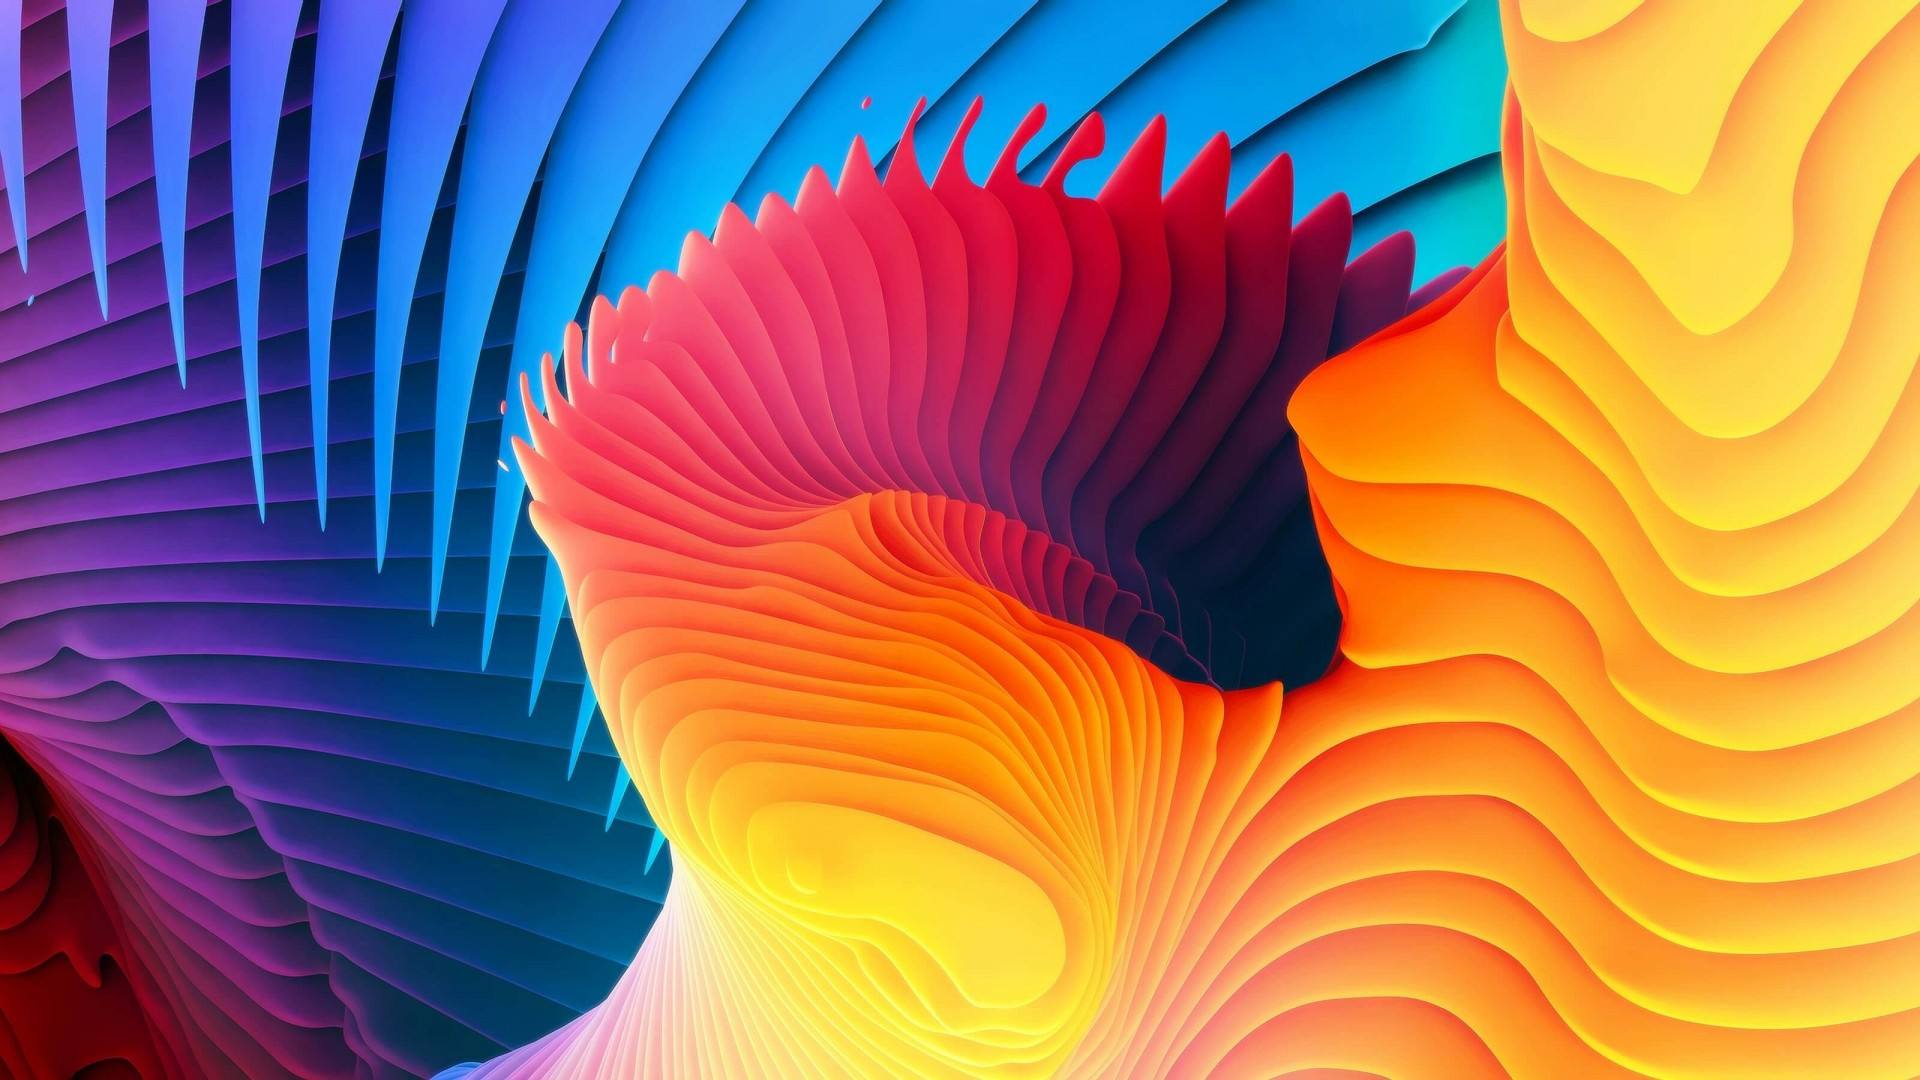 3D Colorful Spiral Wallpaper for Desktop 1920x1080